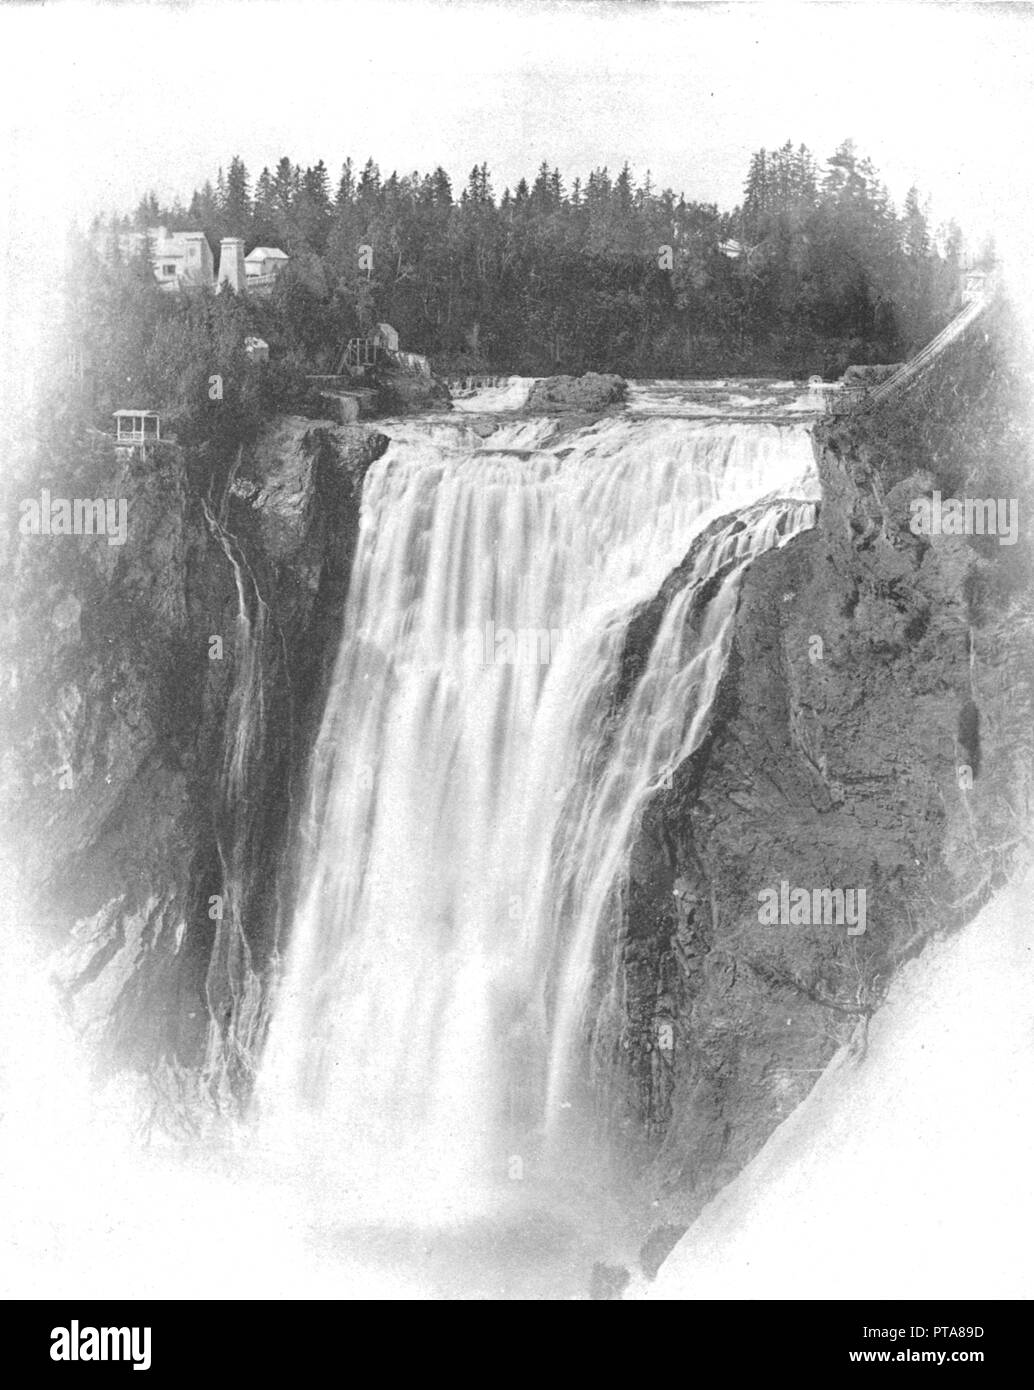 Falls of Montmorency, Quebec, Canada, c1900. The waterfalls are 83 meters tall, 30 meters higher than Niagara Falls. From Scenic Marvels of the New World edited by Prof. Geo.R. Cromwell. [C.N.Greig & Co., c1900] - Stock Image